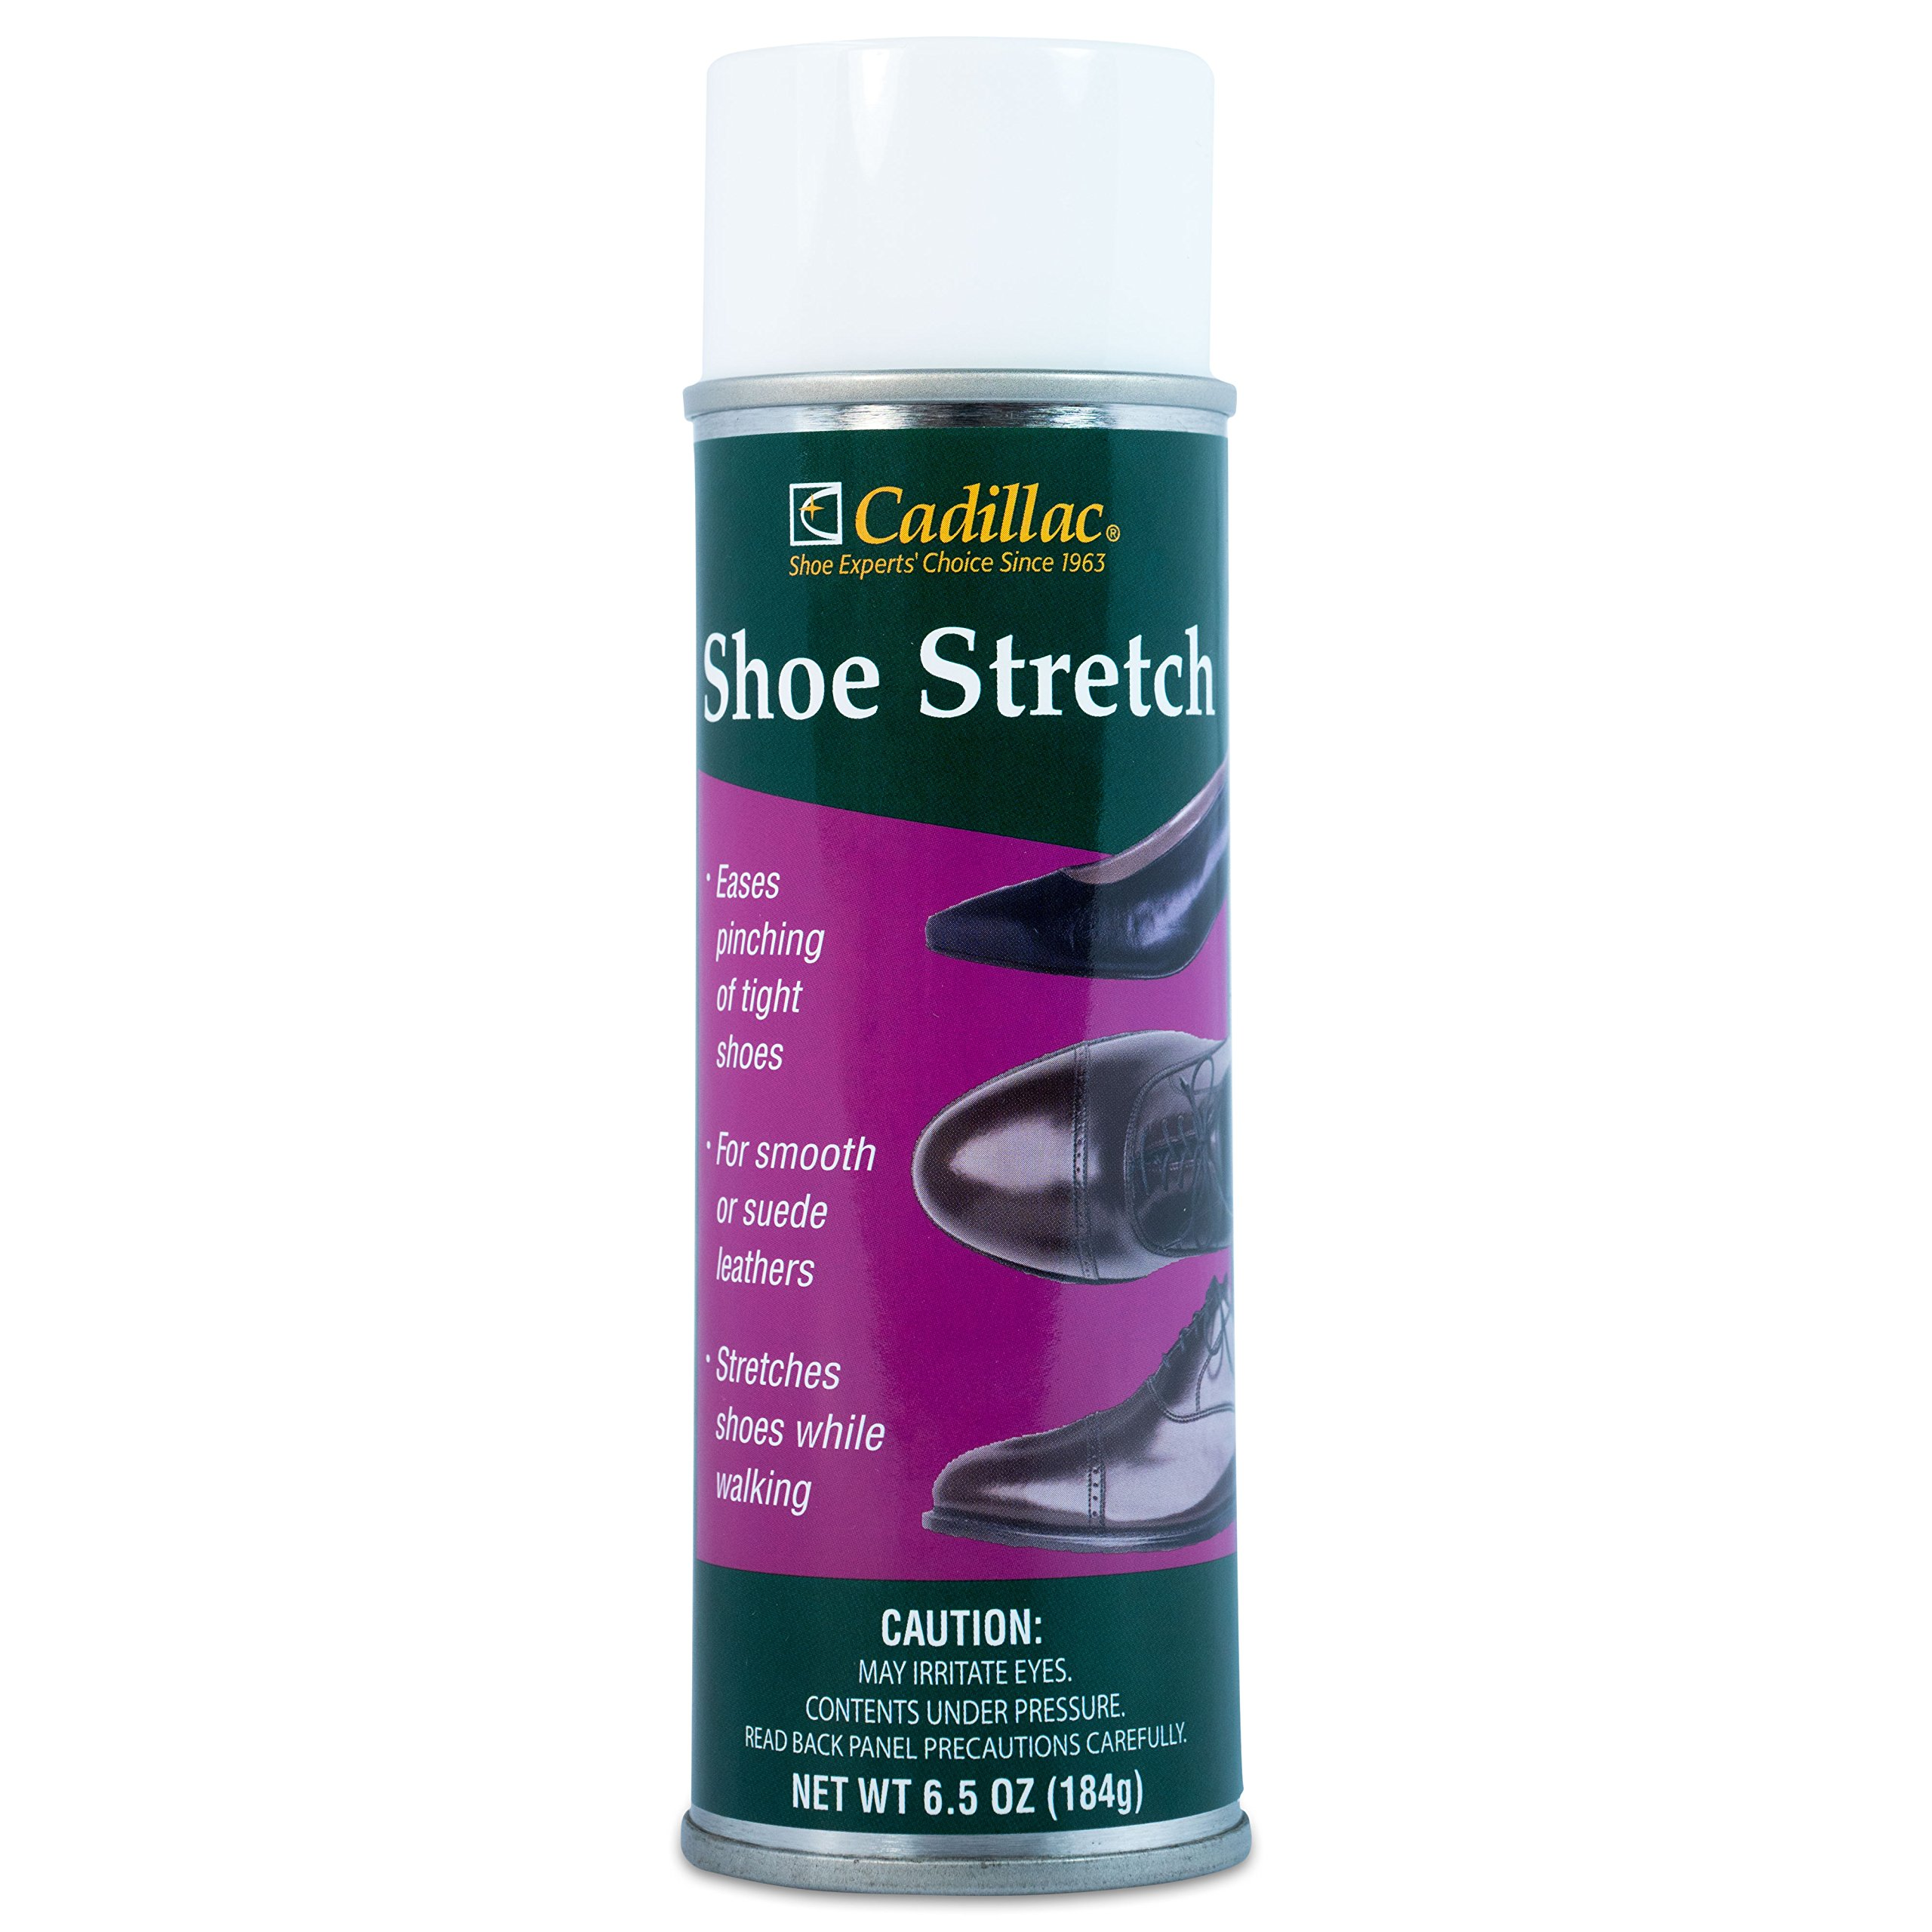 Cadillac Shoe Stretch Spray - Professional Boot & Shoe Stretcher & Softener for Women and Men | Stretch Leather, Suede, Nubuck and Other Footwear for Wide Feet